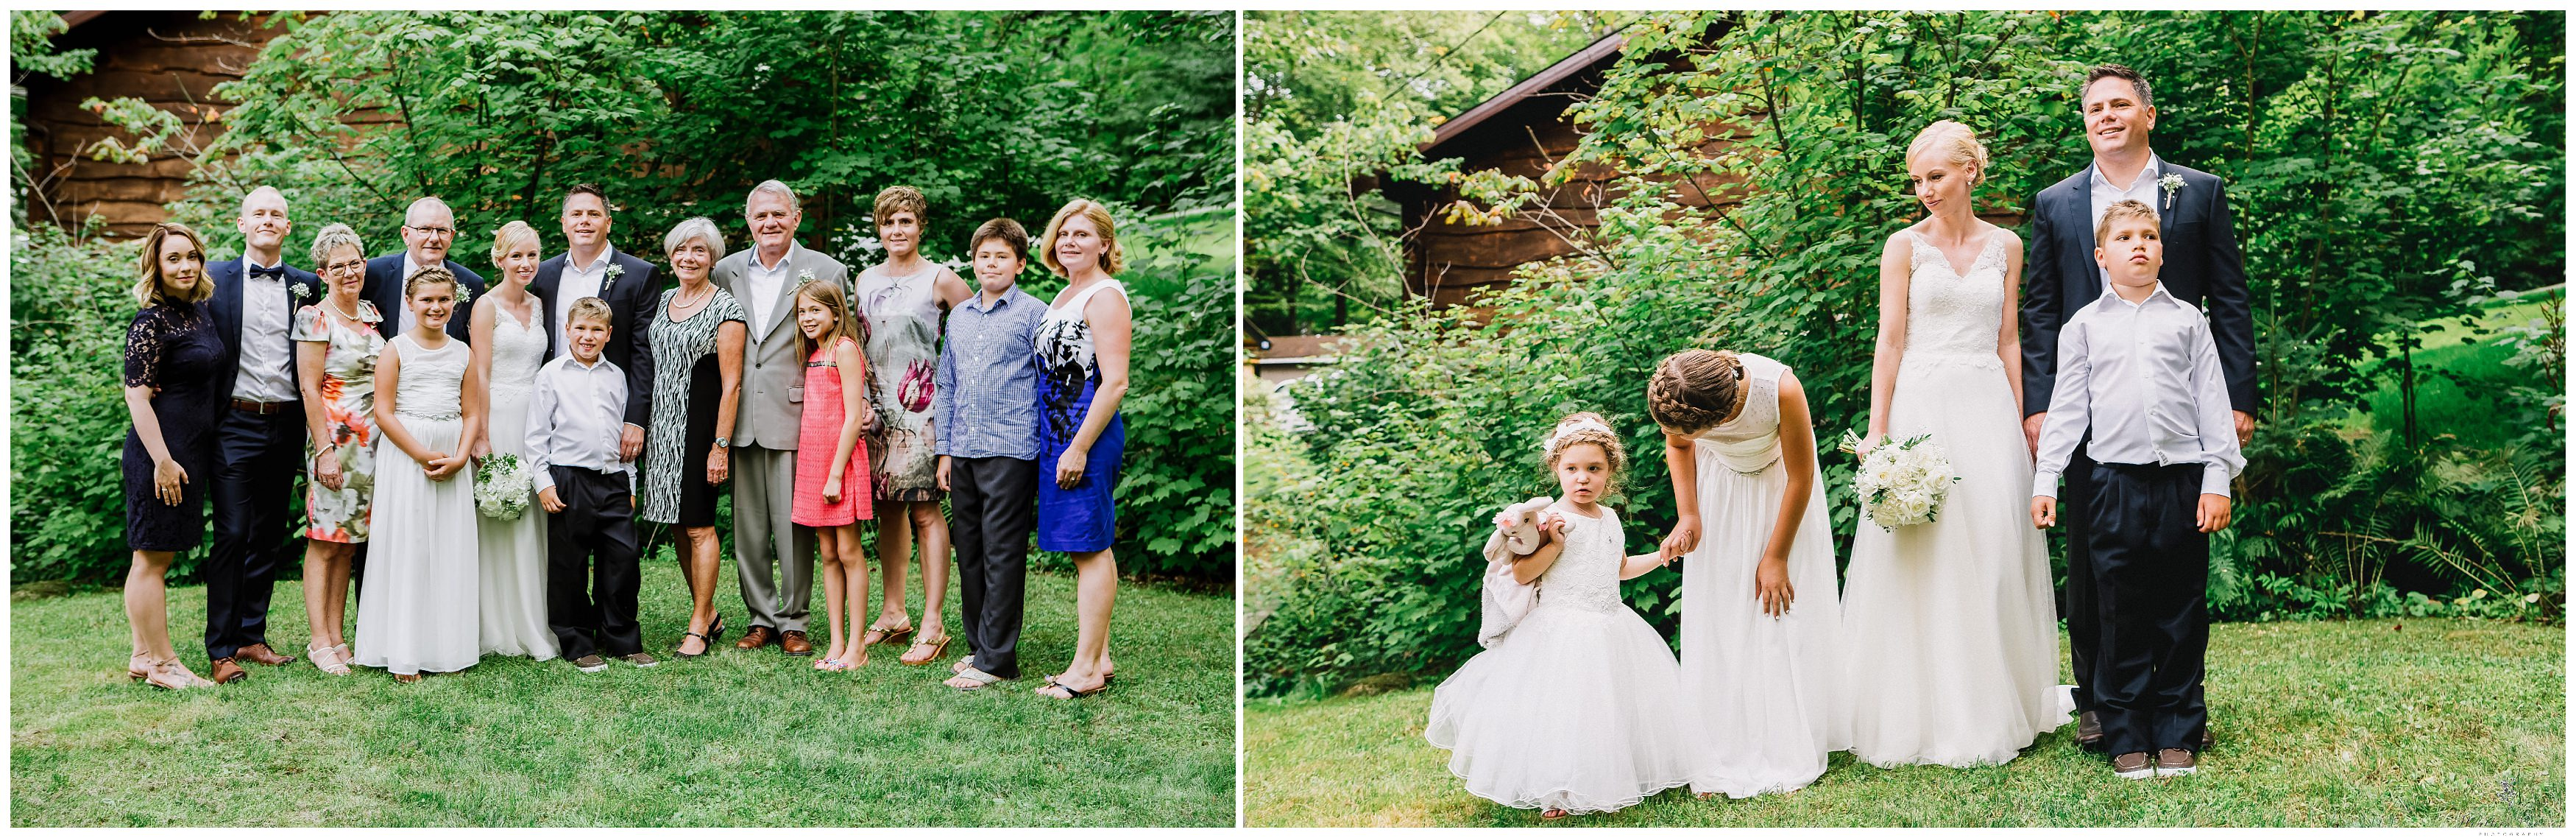 Haliburton Cottage Wedding_1310-1.jpg